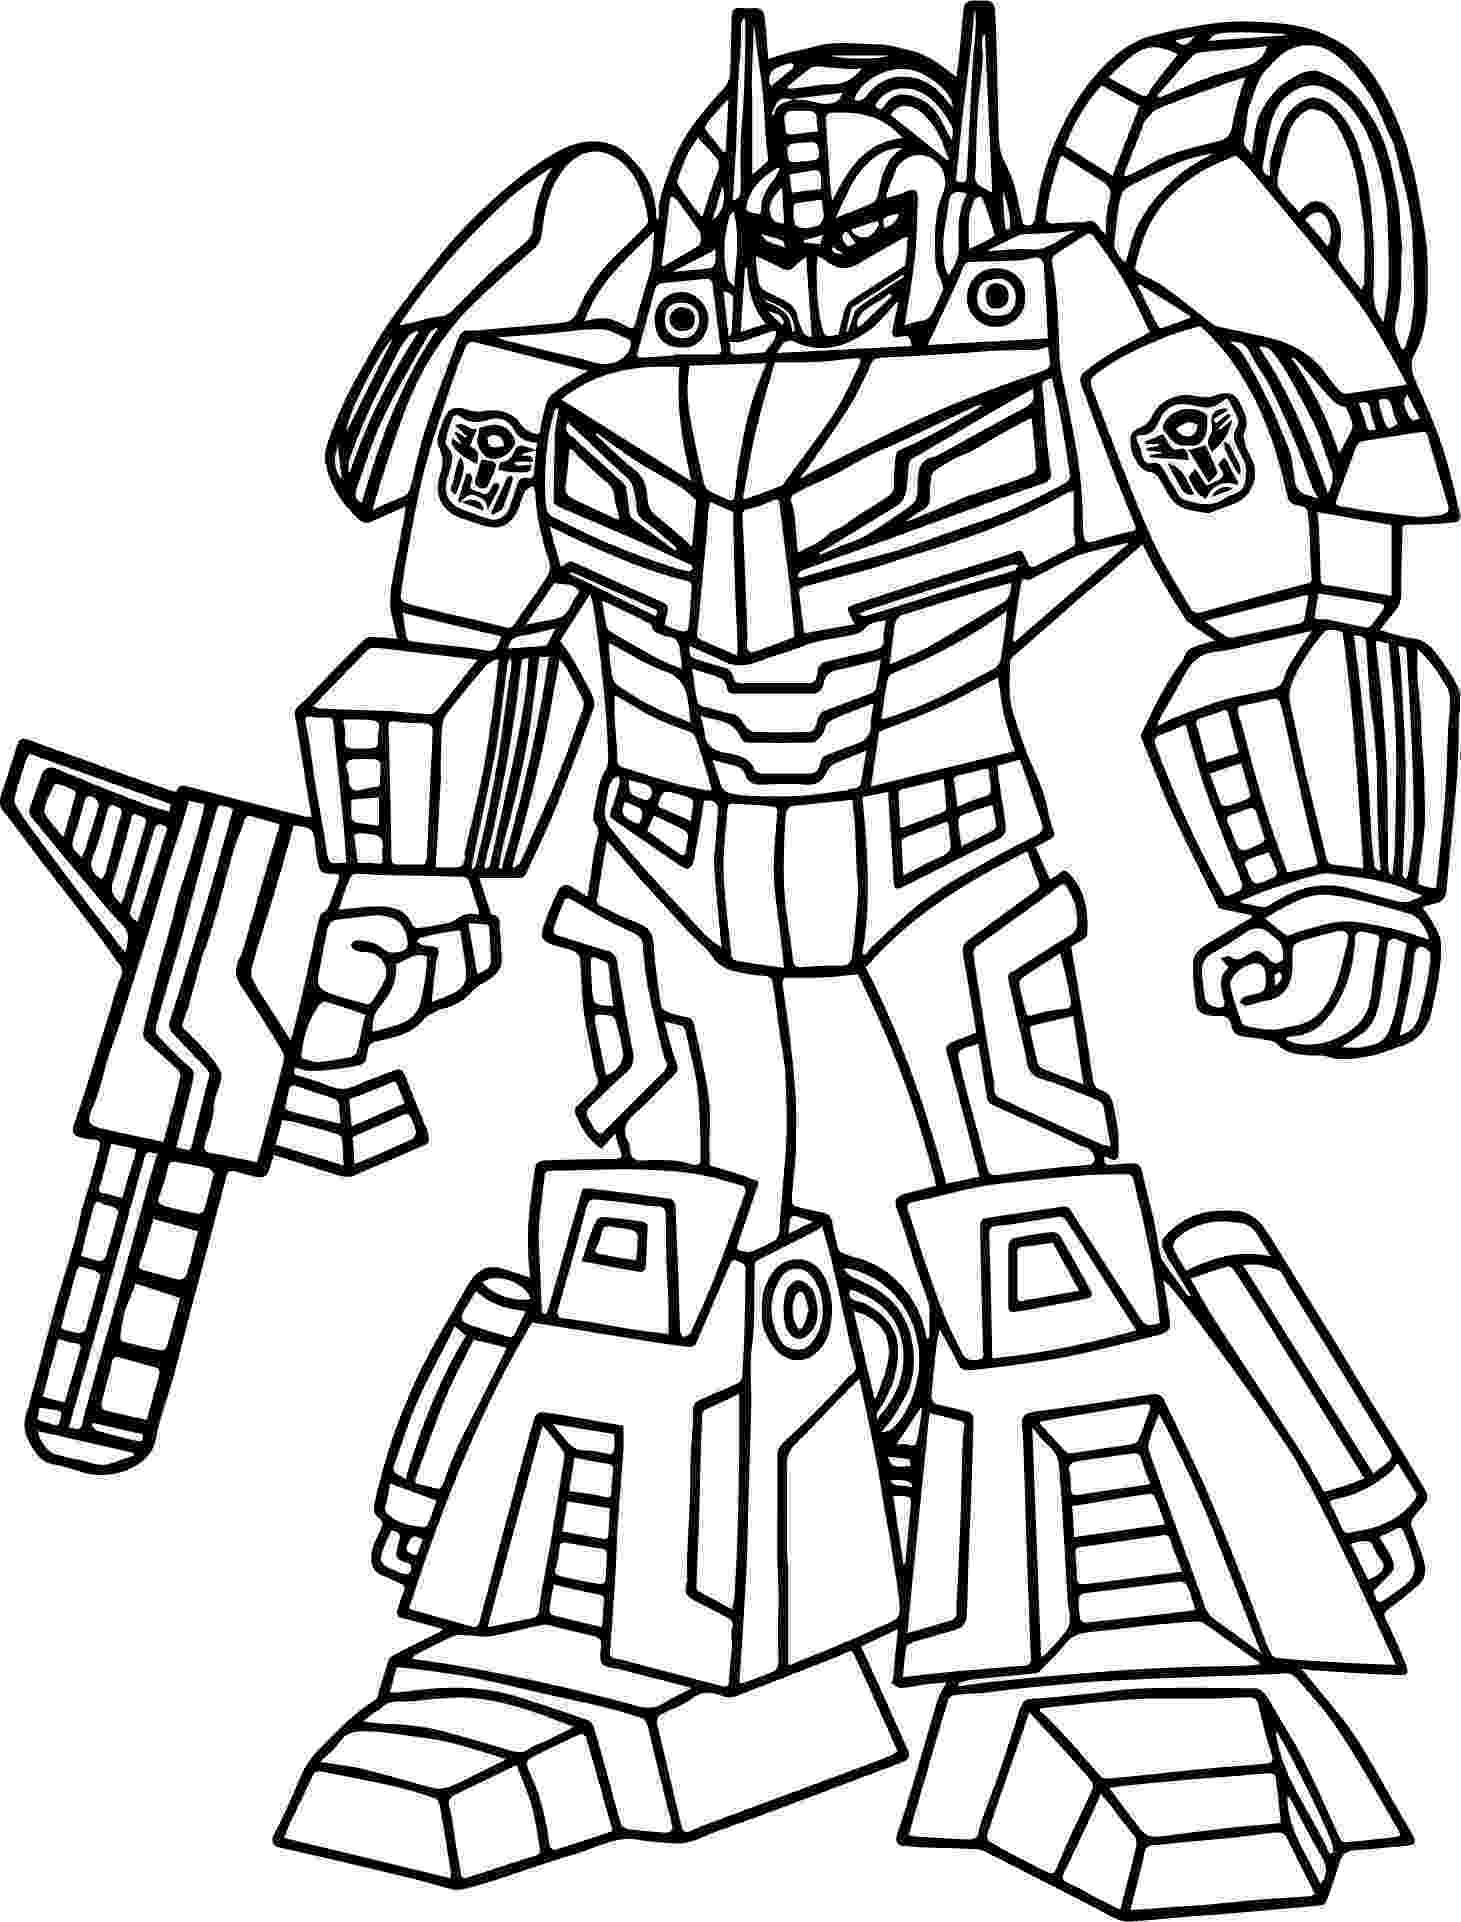 transformer coloring page transformer coloring pages coloring pages to download coloring transformer page